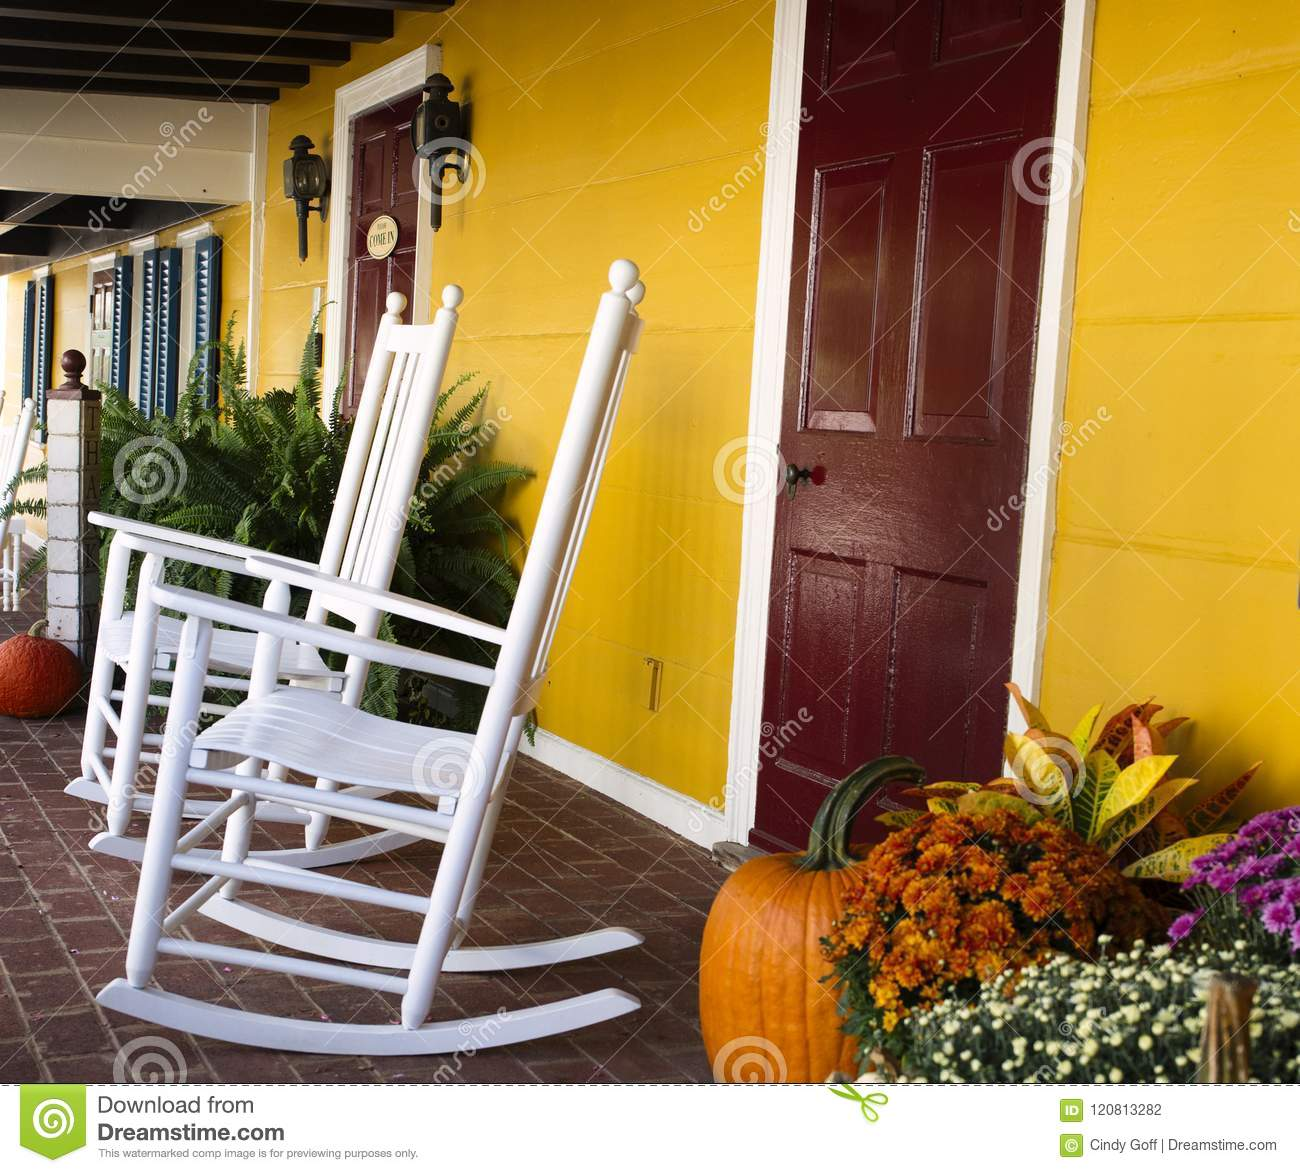 Terrific Autumn Decoration In Virginia With Pumpkins And Rocking Gmtry Best Dining Table And Chair Ideas Images Gmtryco